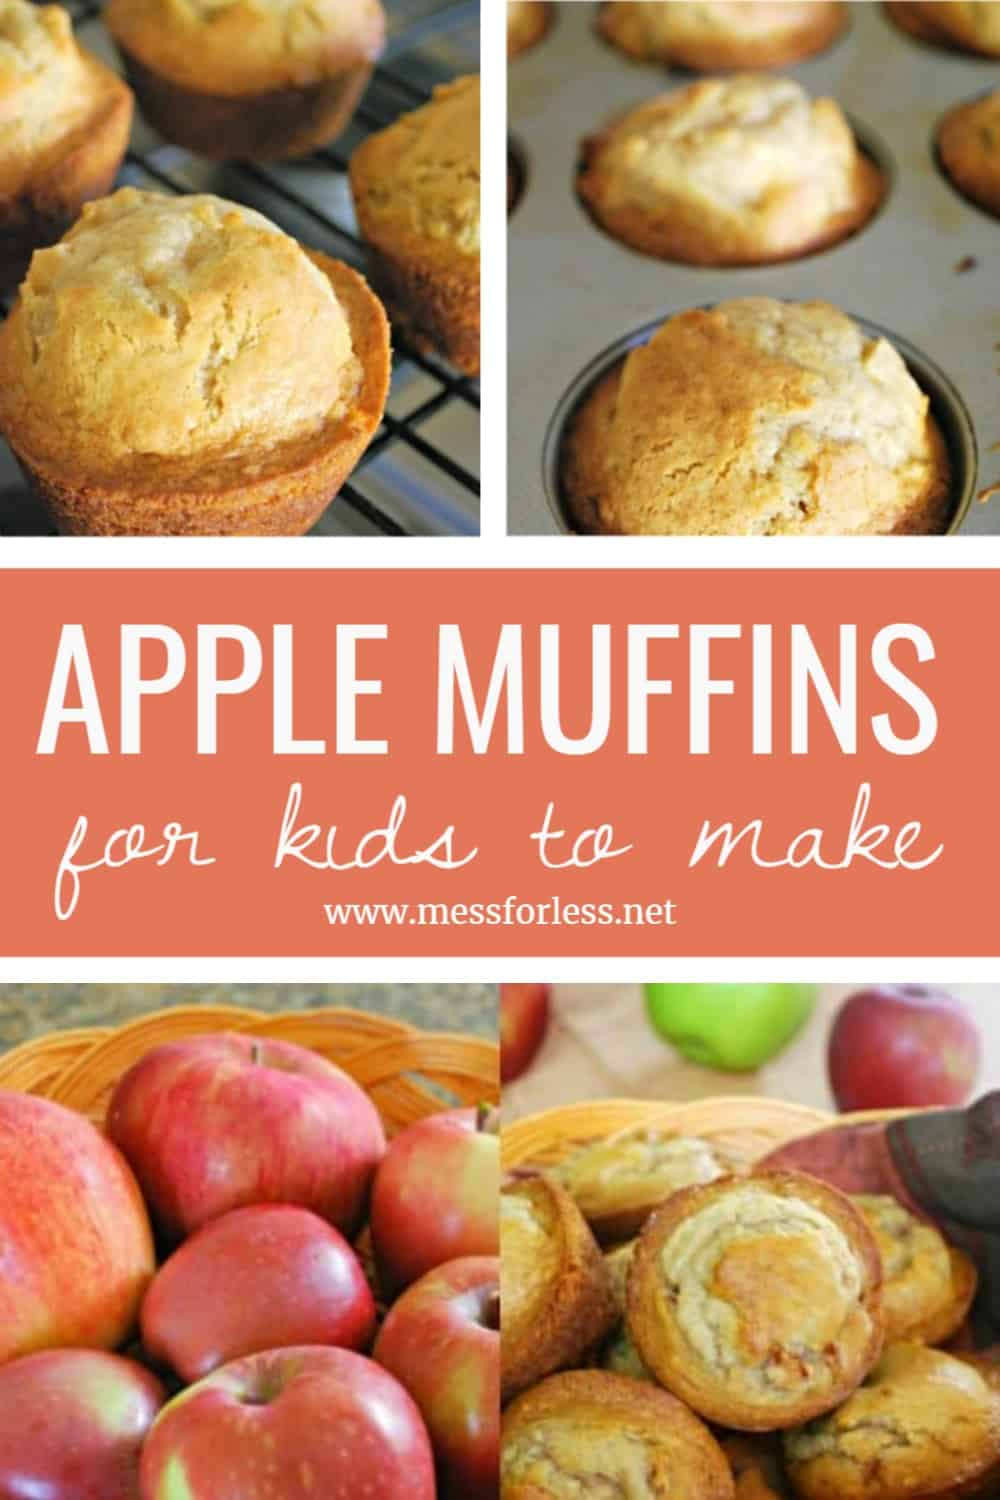 Easy apple muffins recipe. These moist, perfectly spiced apple muffins are quick to come together and are bursting with fresh apple flavor.